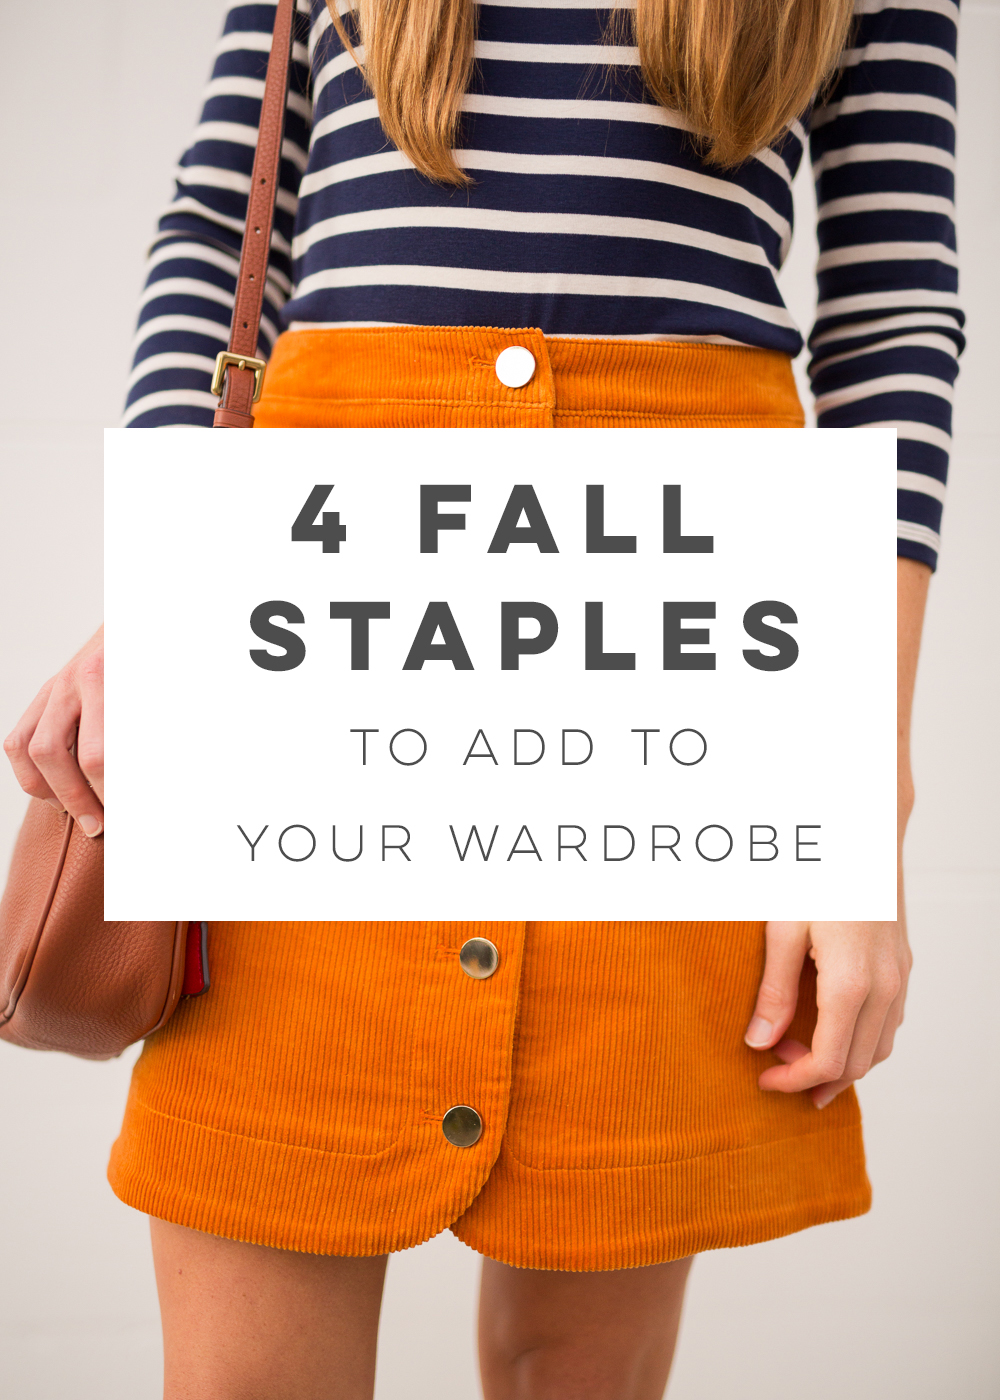 4 Must Have Fall Wardrobe Staples, Striped Top, Button Up Corduroy Skirt, Leather Boots and a Crossbody Leather Bag | Sunshine Style